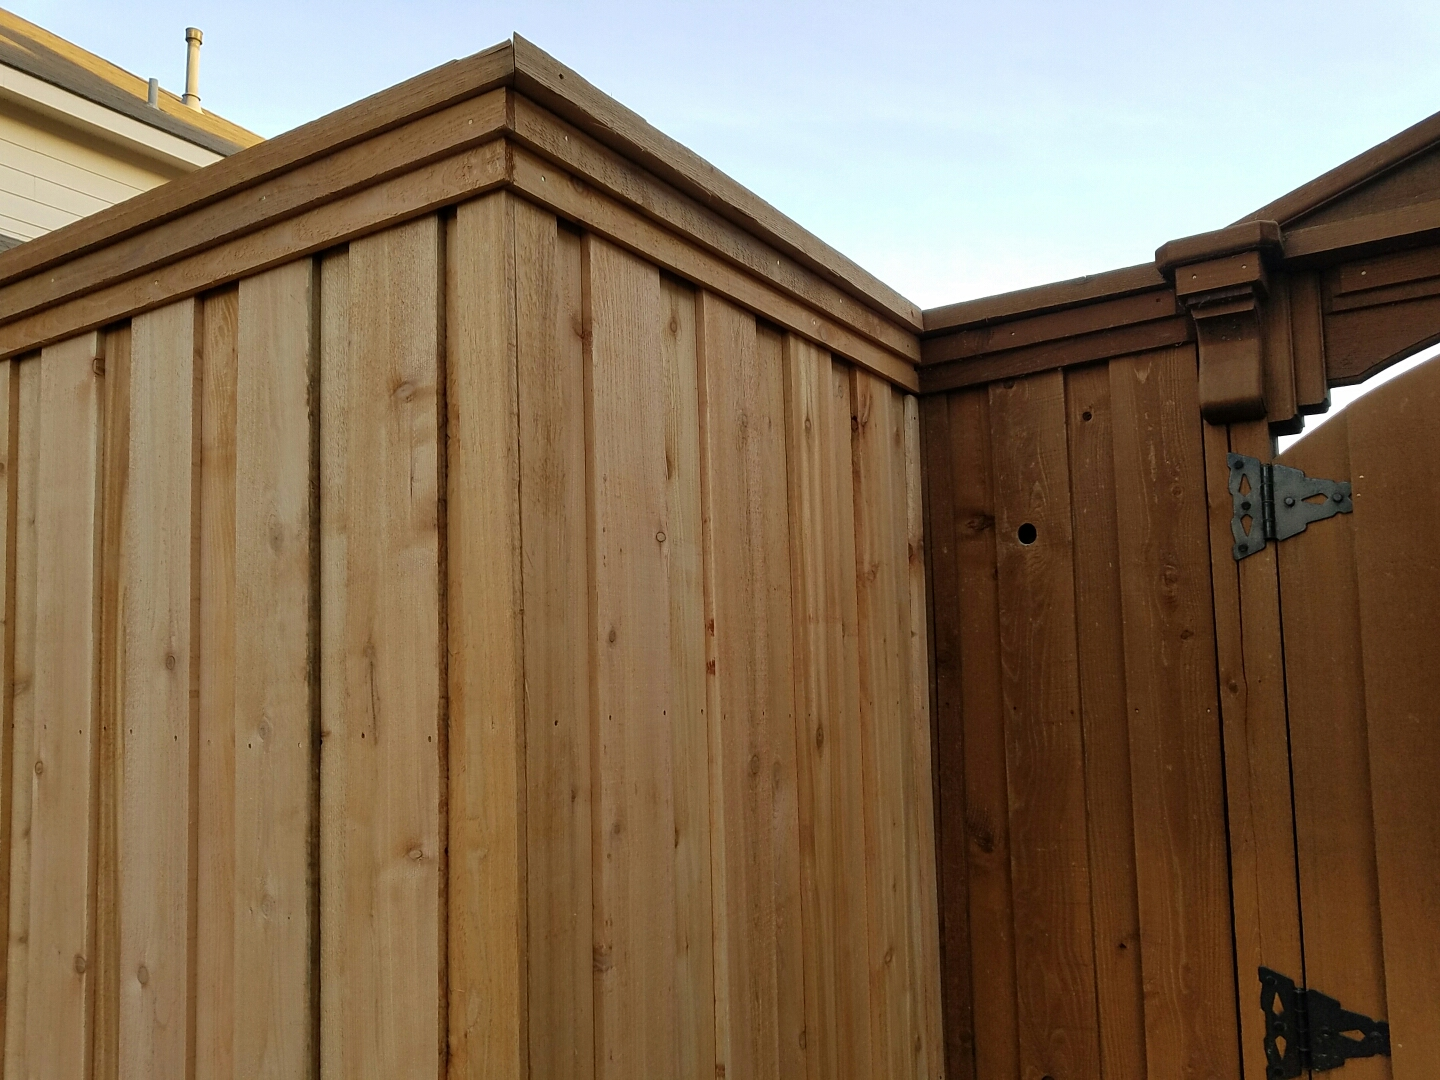 Decorative Fence Installation By Charlie Mike Construction